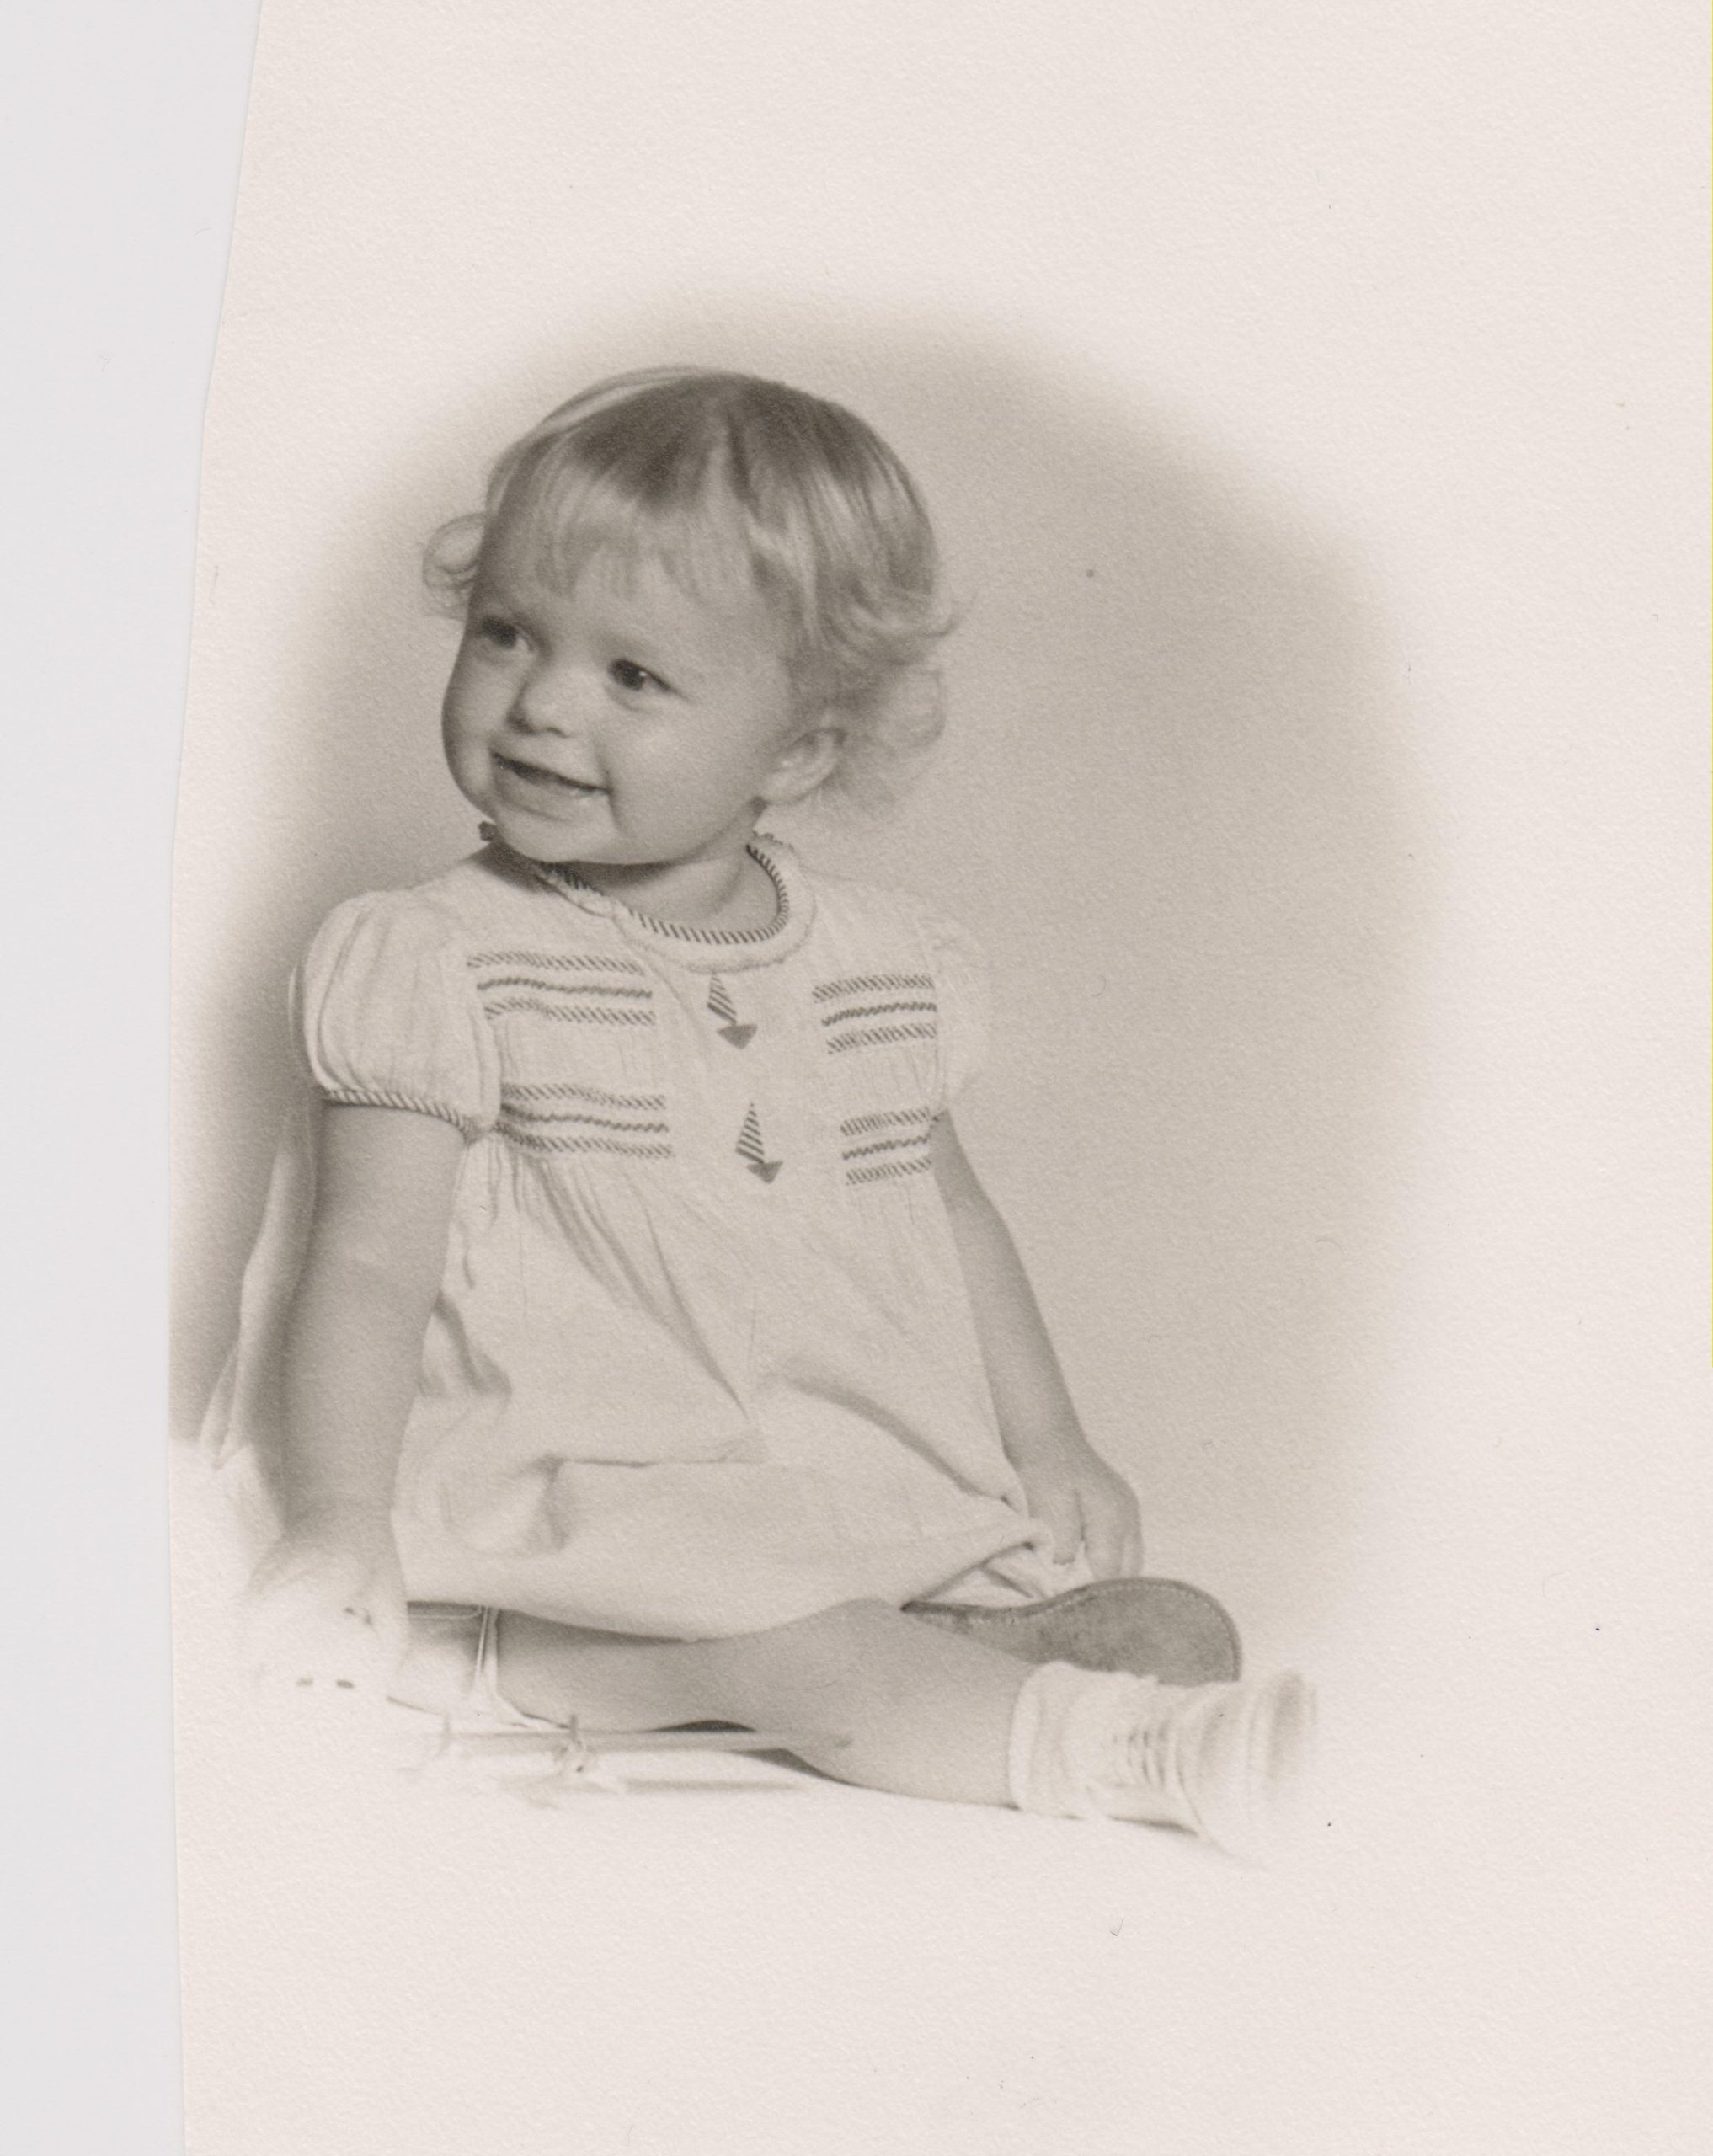 Kathleen Ross, snjm at one year old, 1942